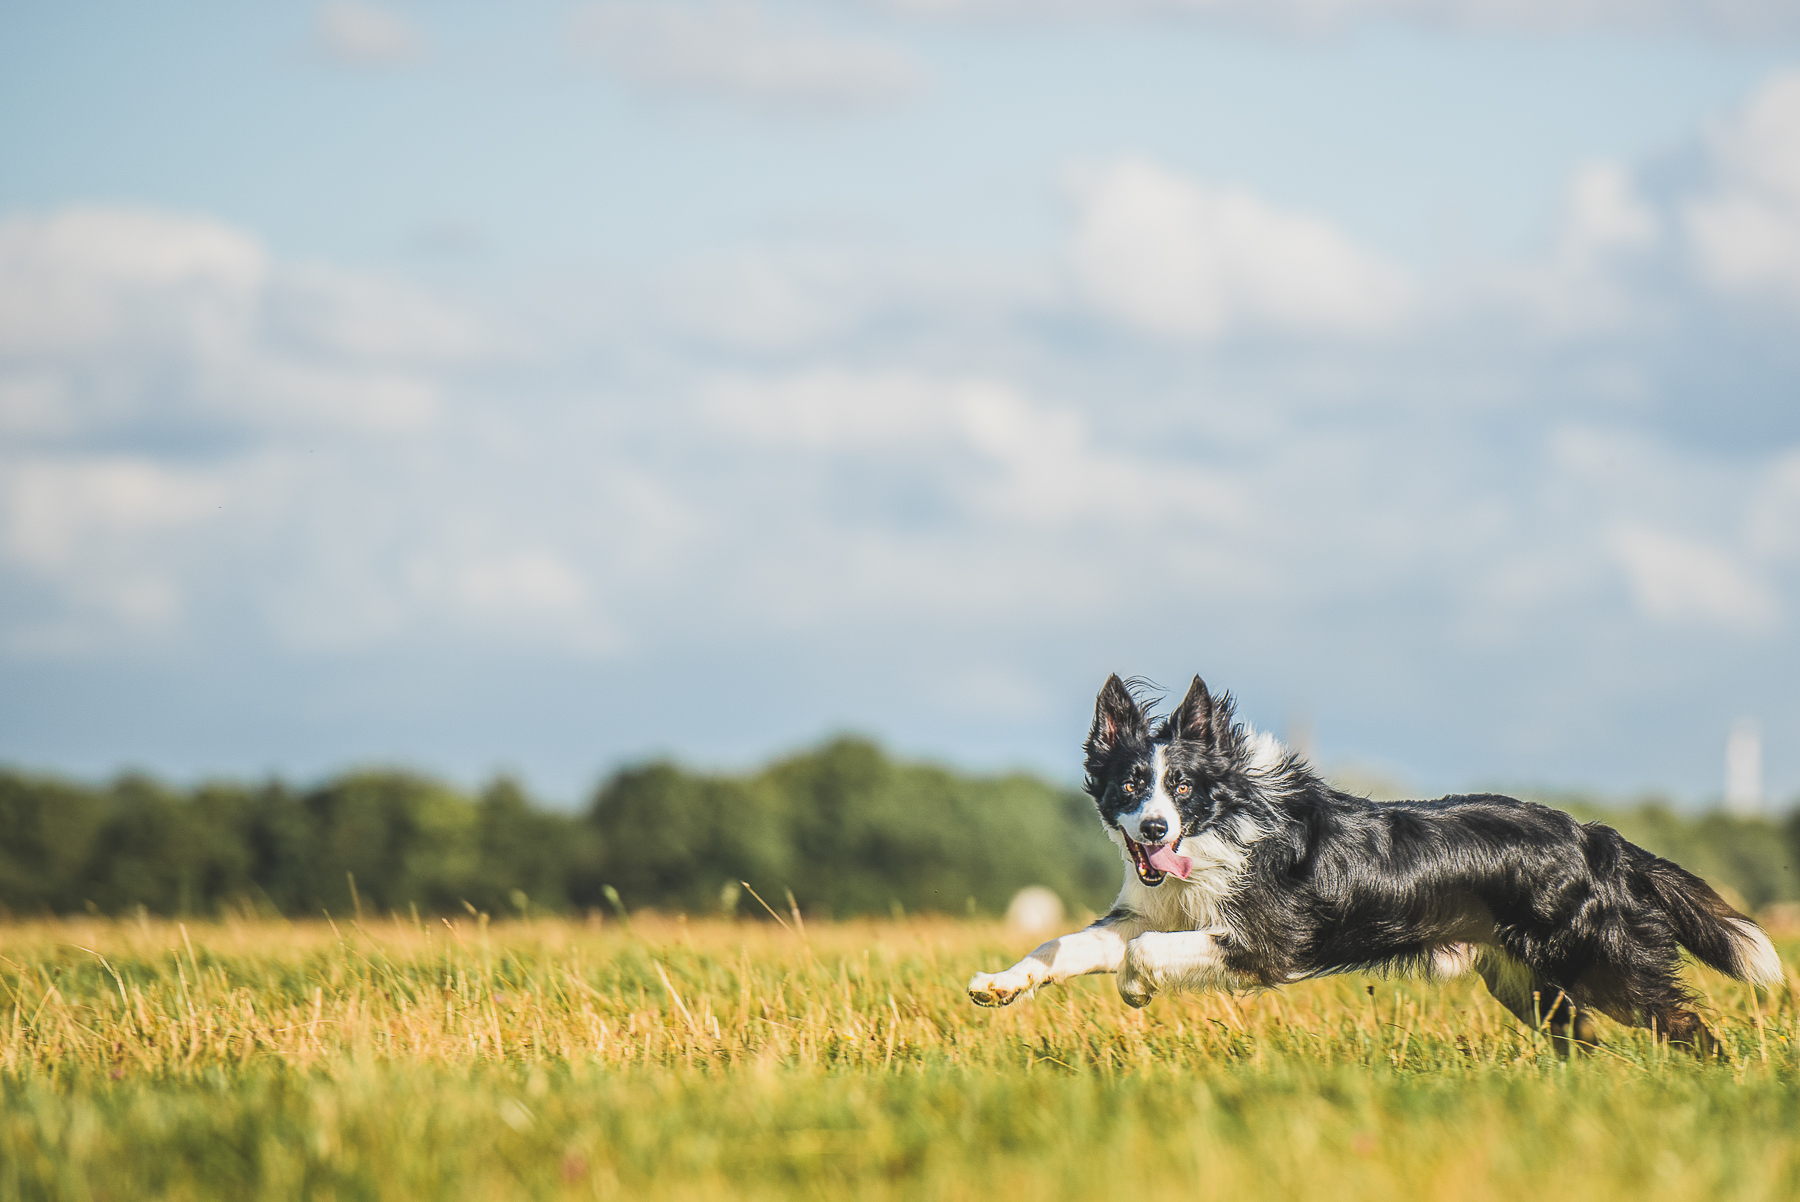 Border collie running through grass field